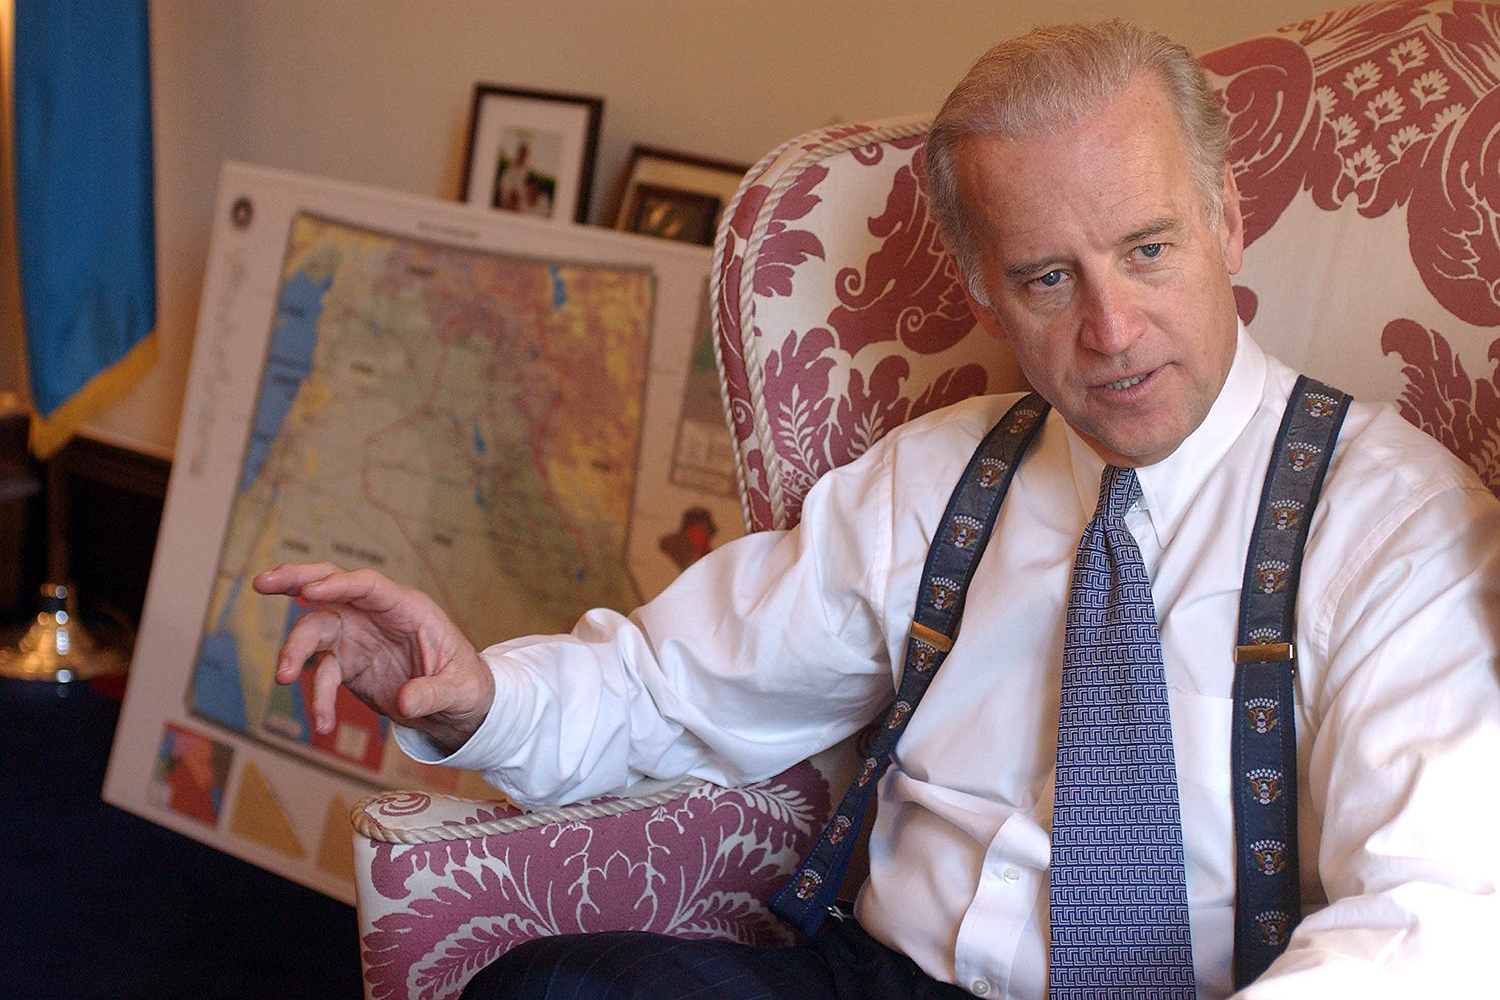 U.S. Sen. Joe Biden, then ranking Democrat on the Senate Foreign Relations Committee, speaks in his office Feb. 5, 2003, about the possibility of war with Iraq. Biden backed the war, a decision that's he's since called a mistake.